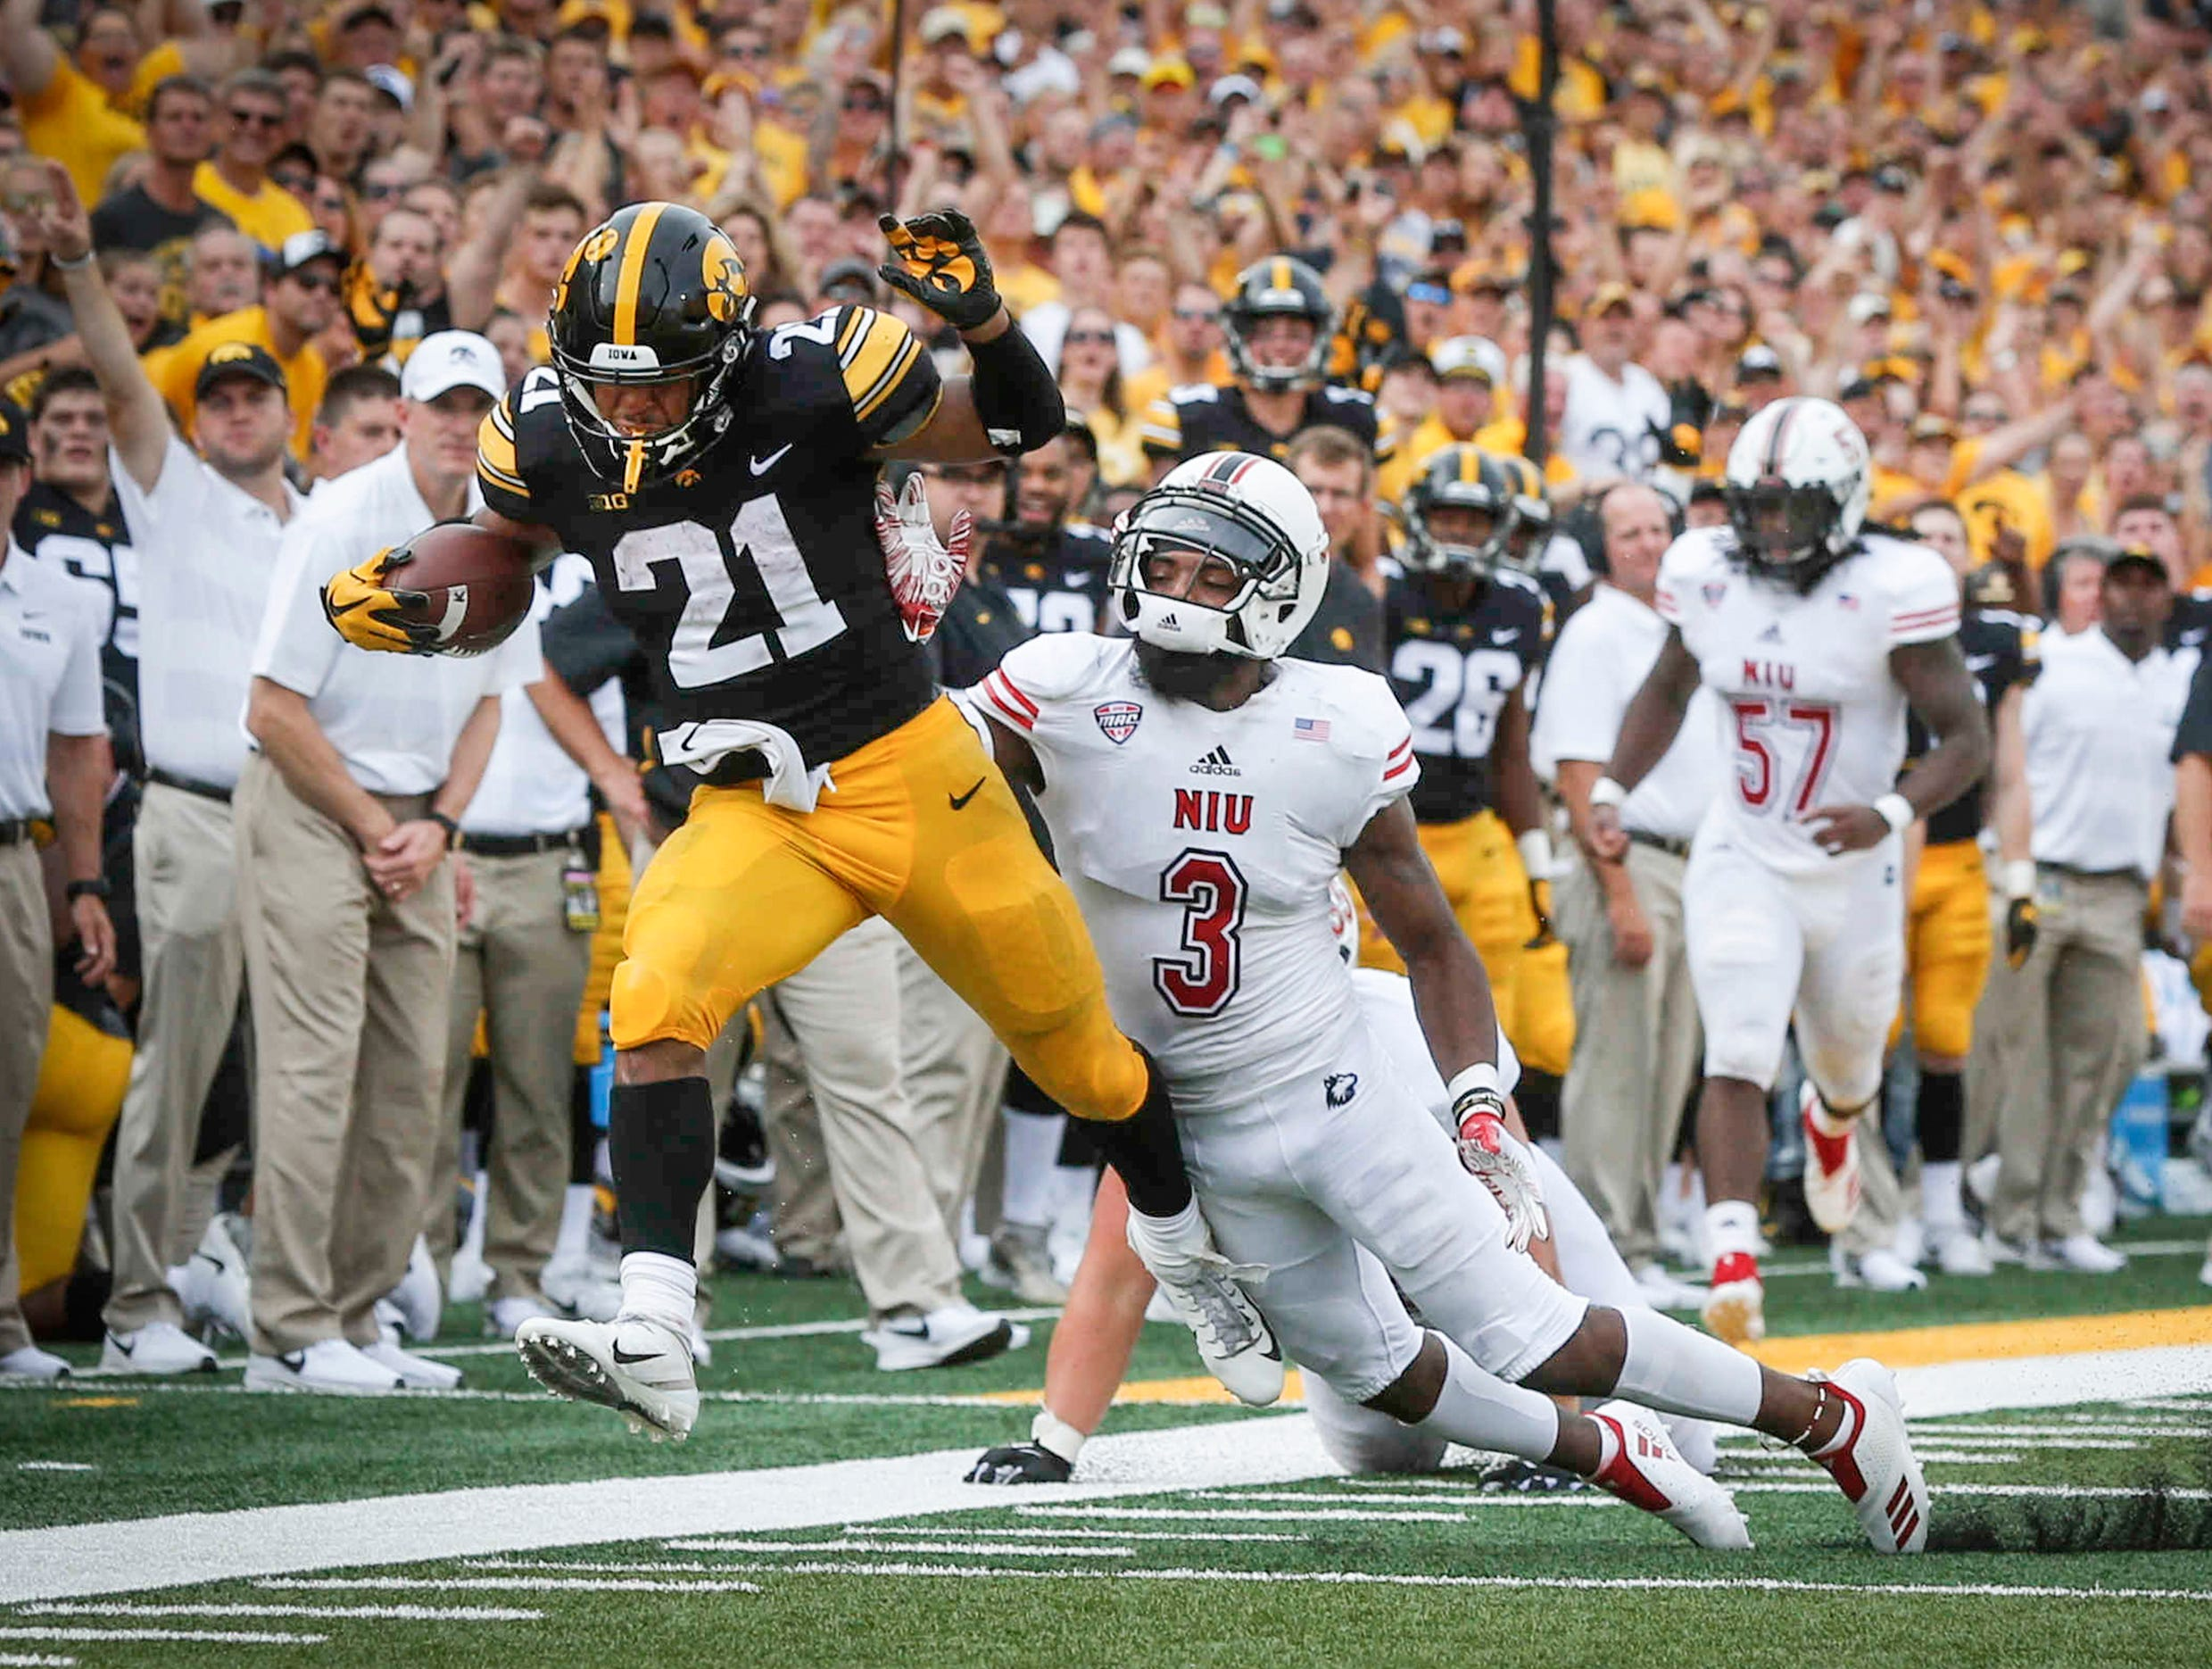 Iowa running back Ivory Kelly-Martin runs the ball for a first down against Northern Illinois University on Saturday, Sept. 1, 2018, at Kinnick Stadium in Iowa City.